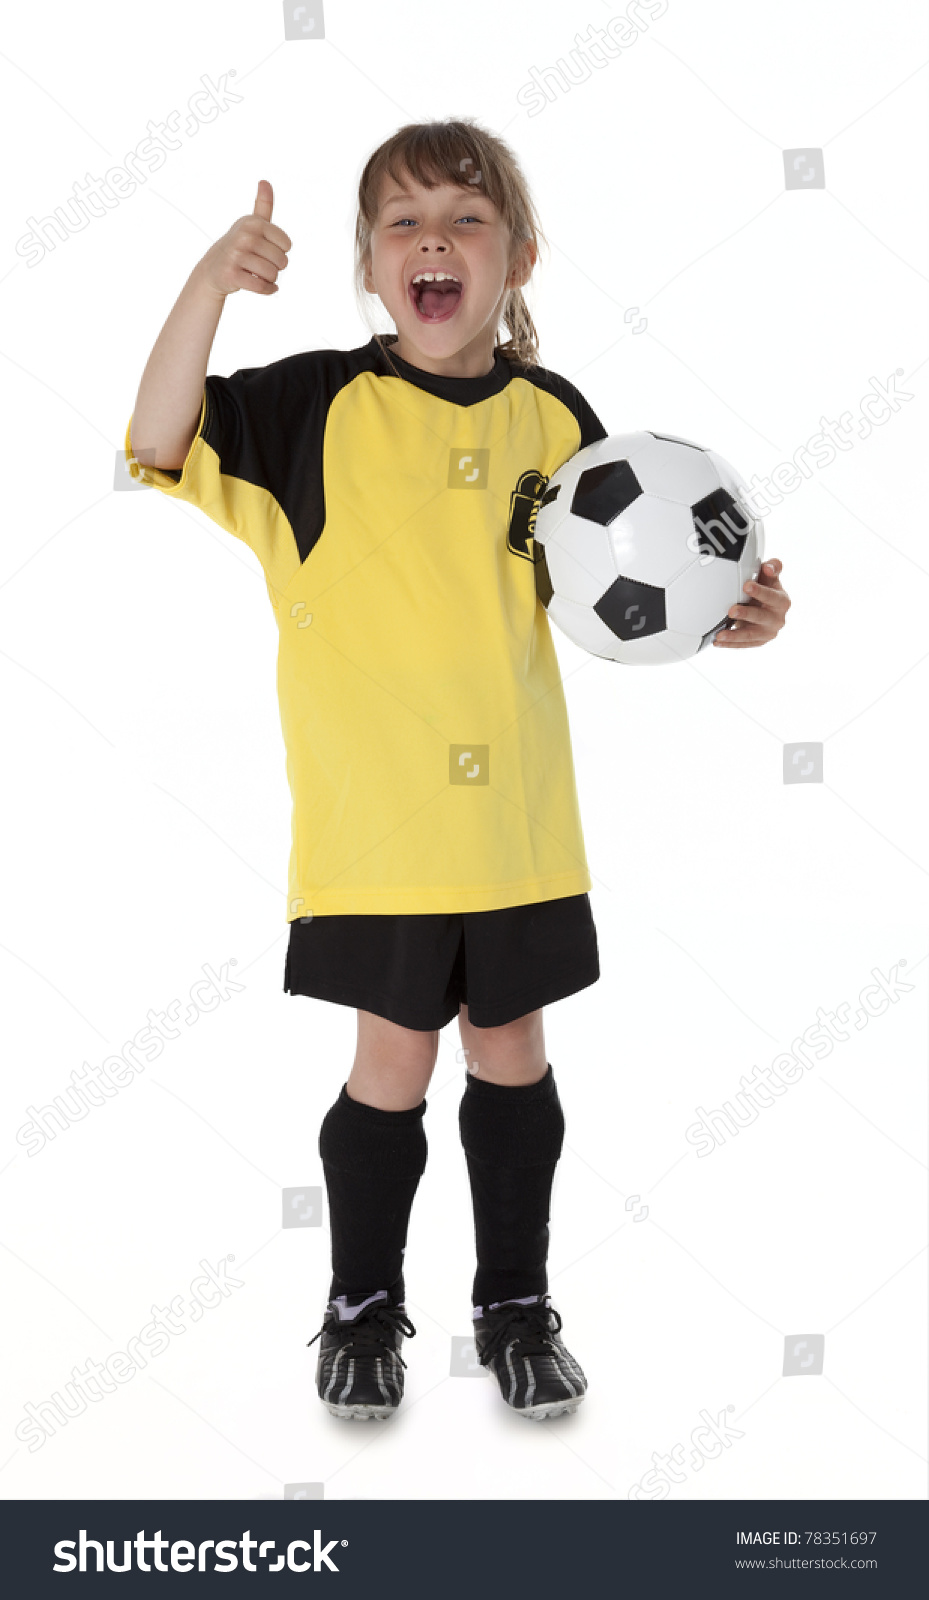 dd04c16b2 Cute Little Girl Dressed Soccer Clothes Stock Photo (Edit Now ...